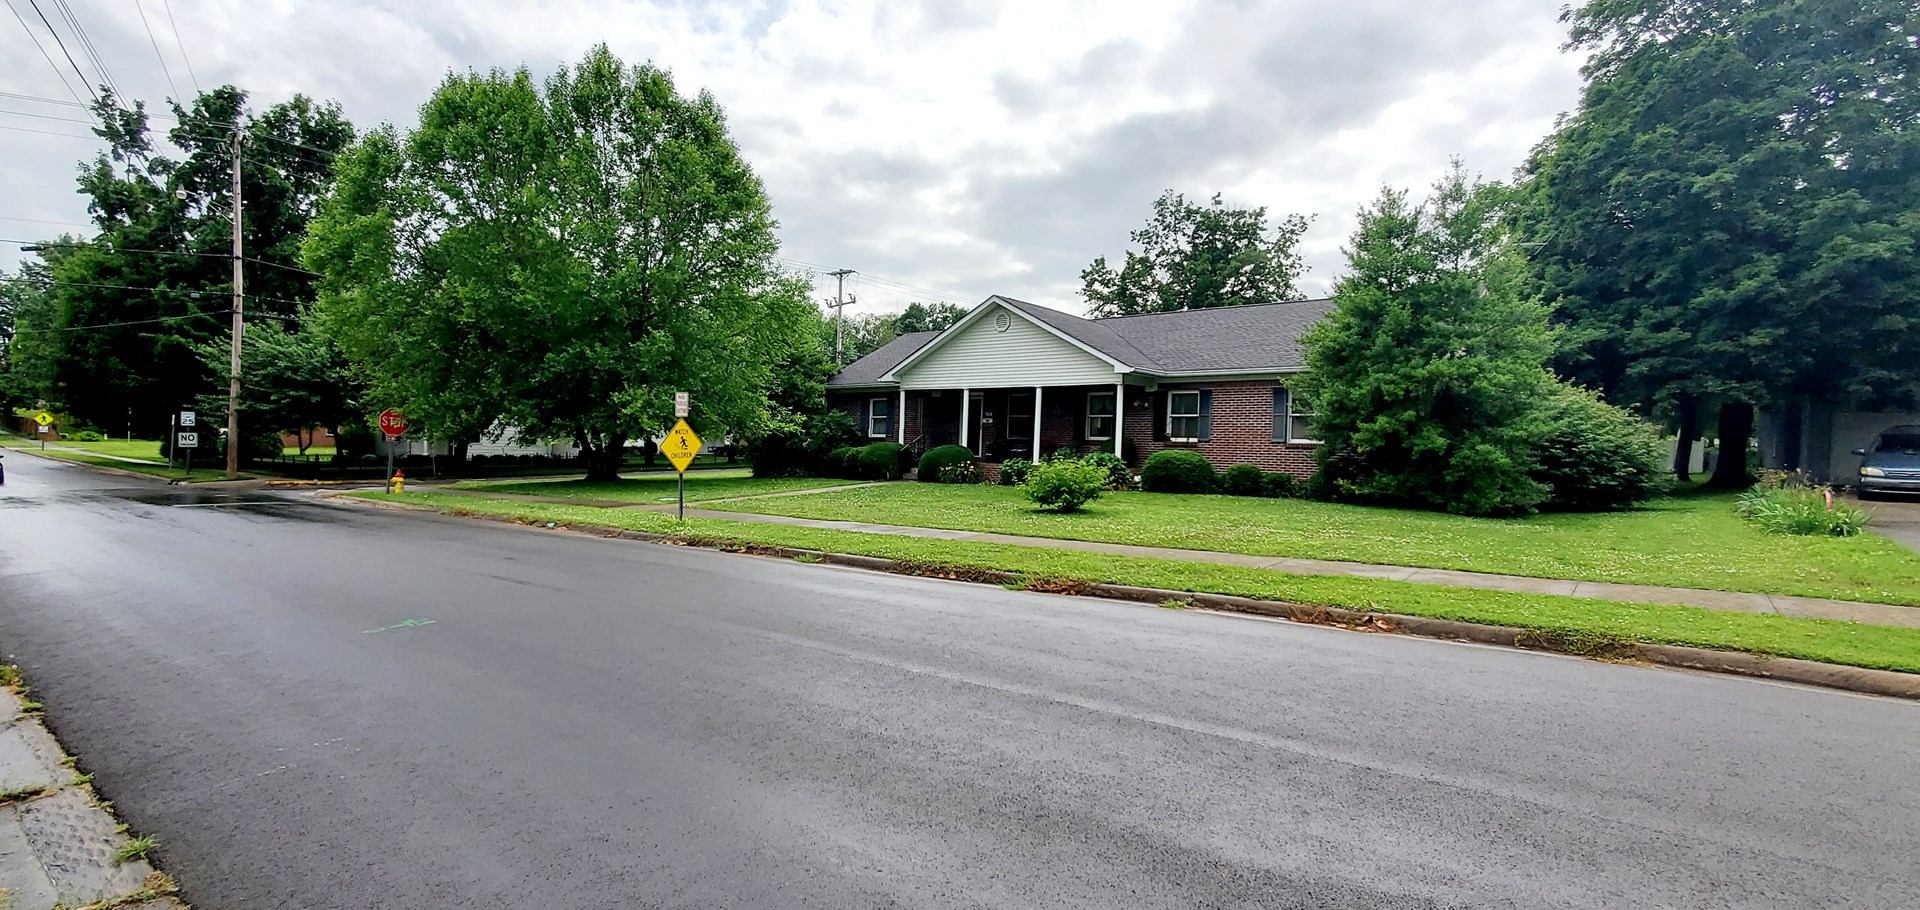 3 Bedroom 2 Bath brick home for sale in Franklin, Ky.